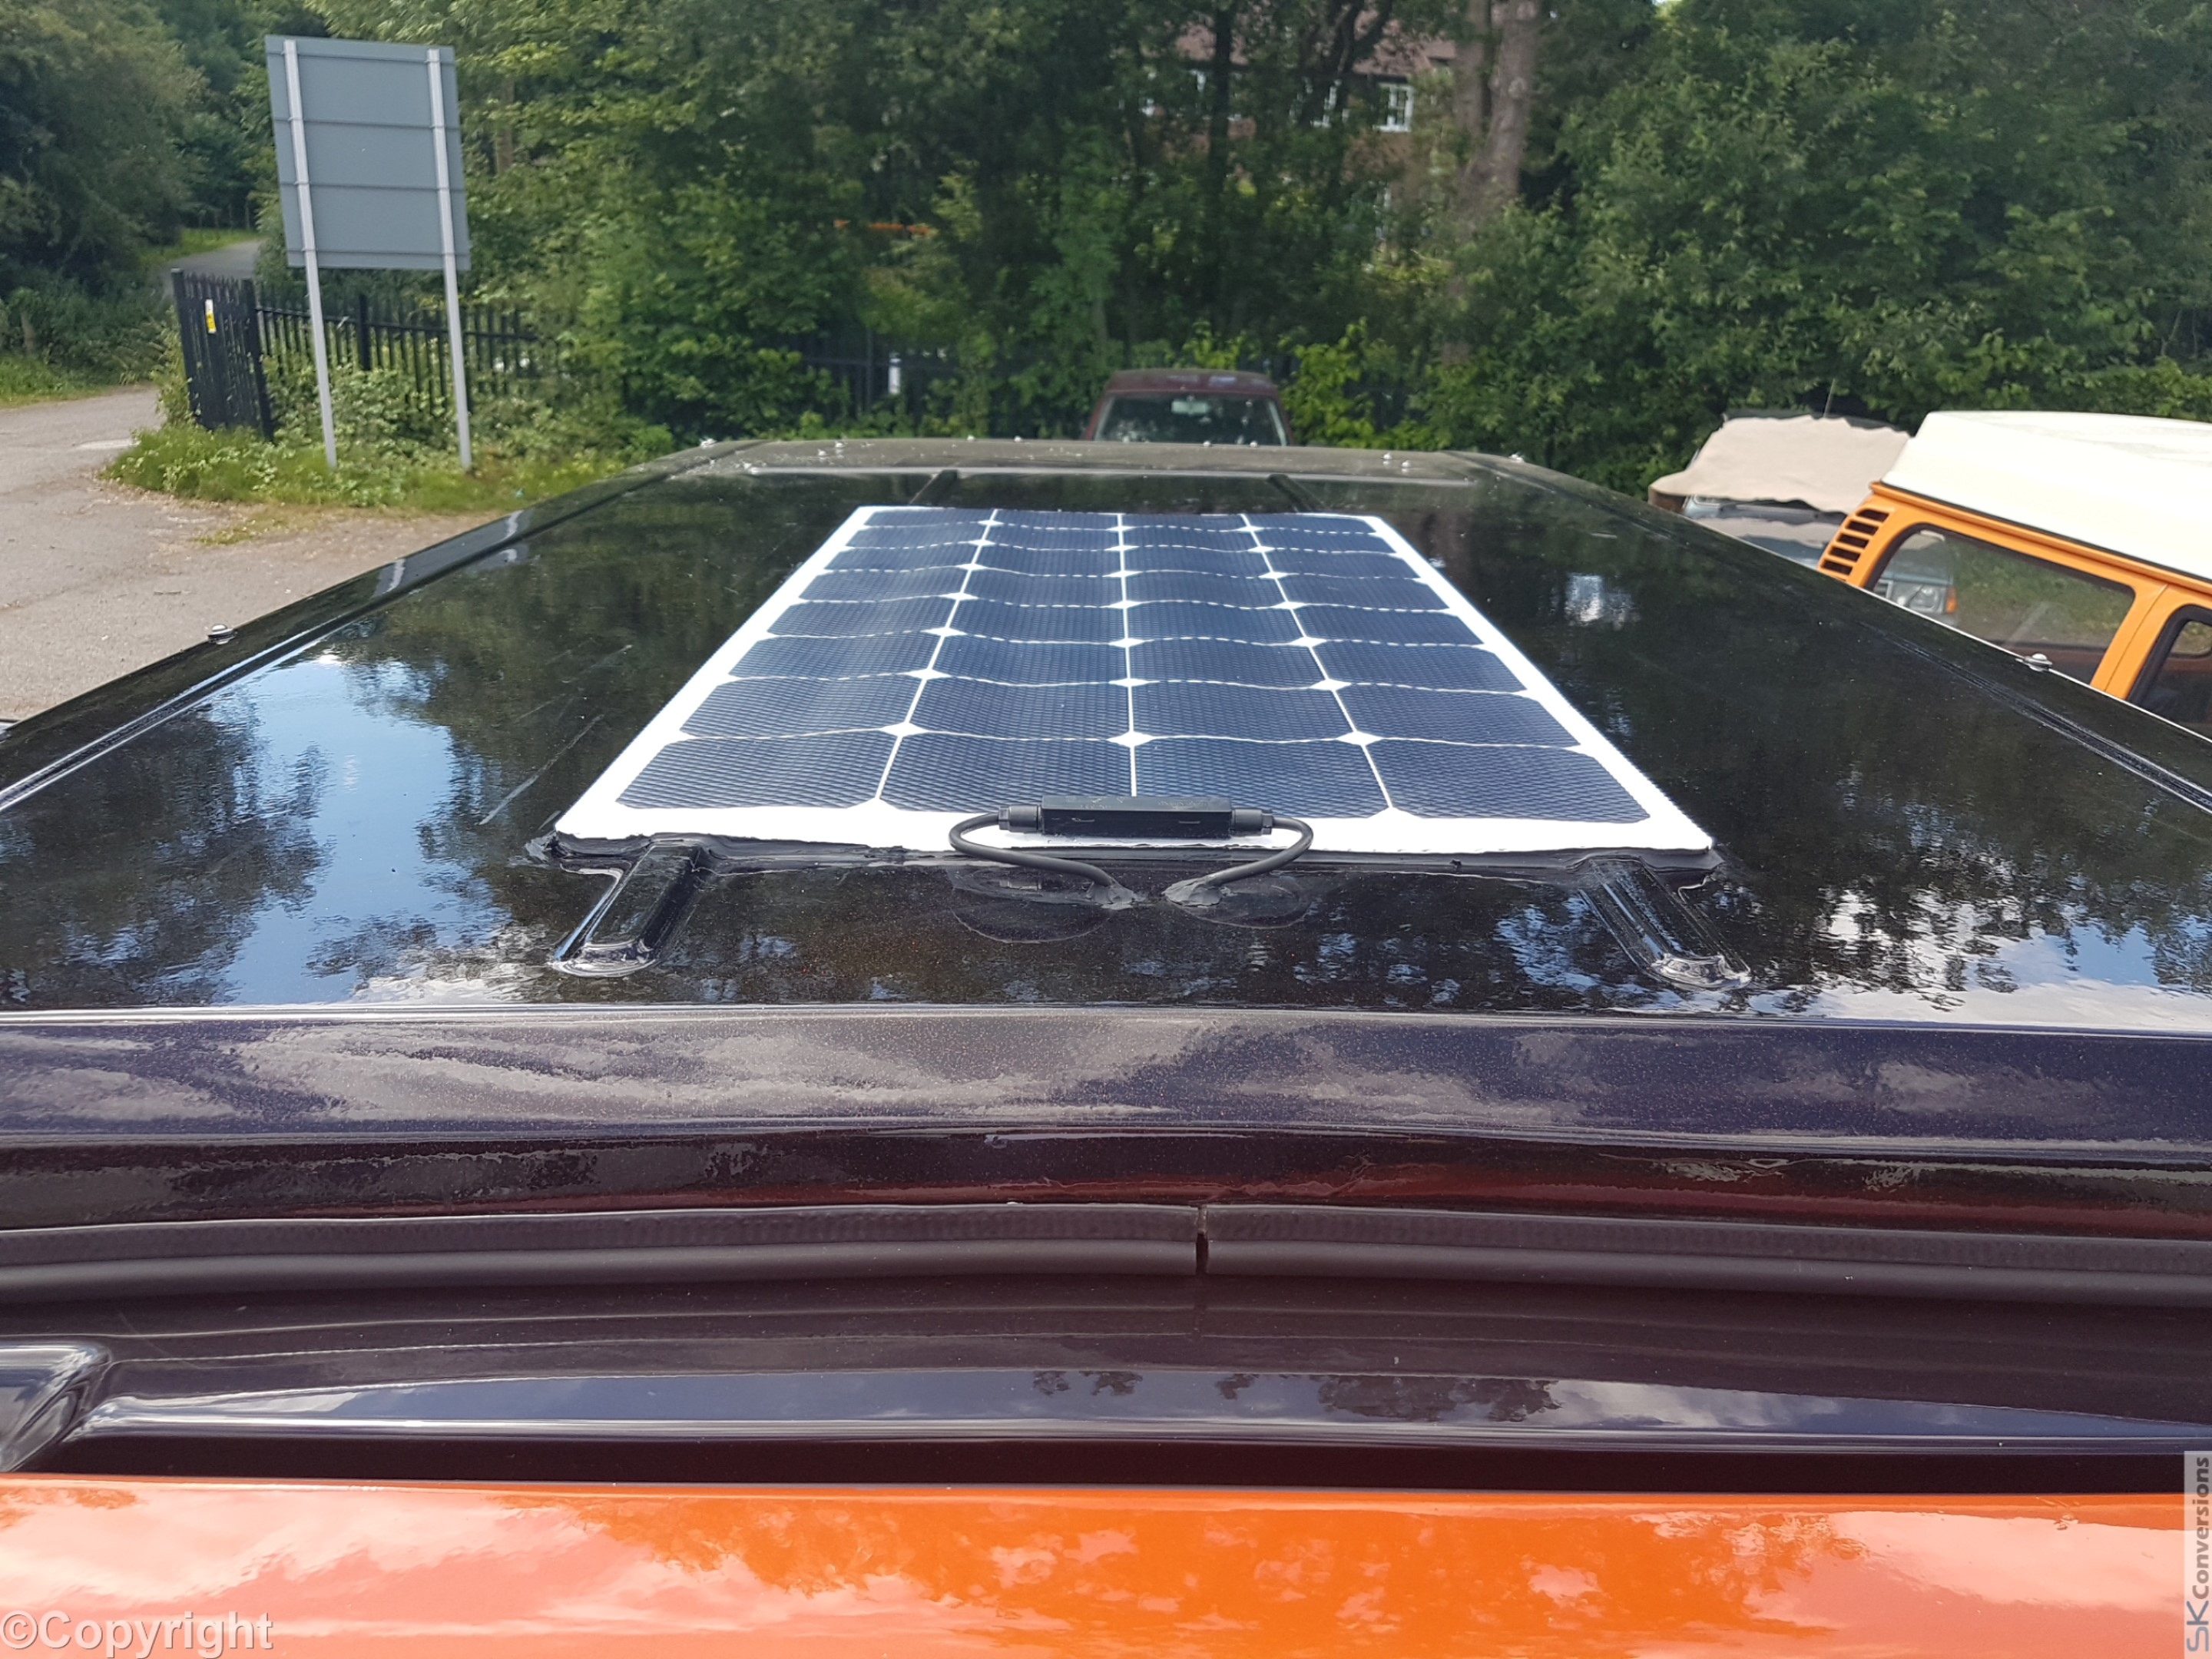 Solar Panel Ford Roof Then We Can Install The Directly To This Controller Eliminating Need For A Separate Mppt Control Unit And Saving You Money 445 Vat